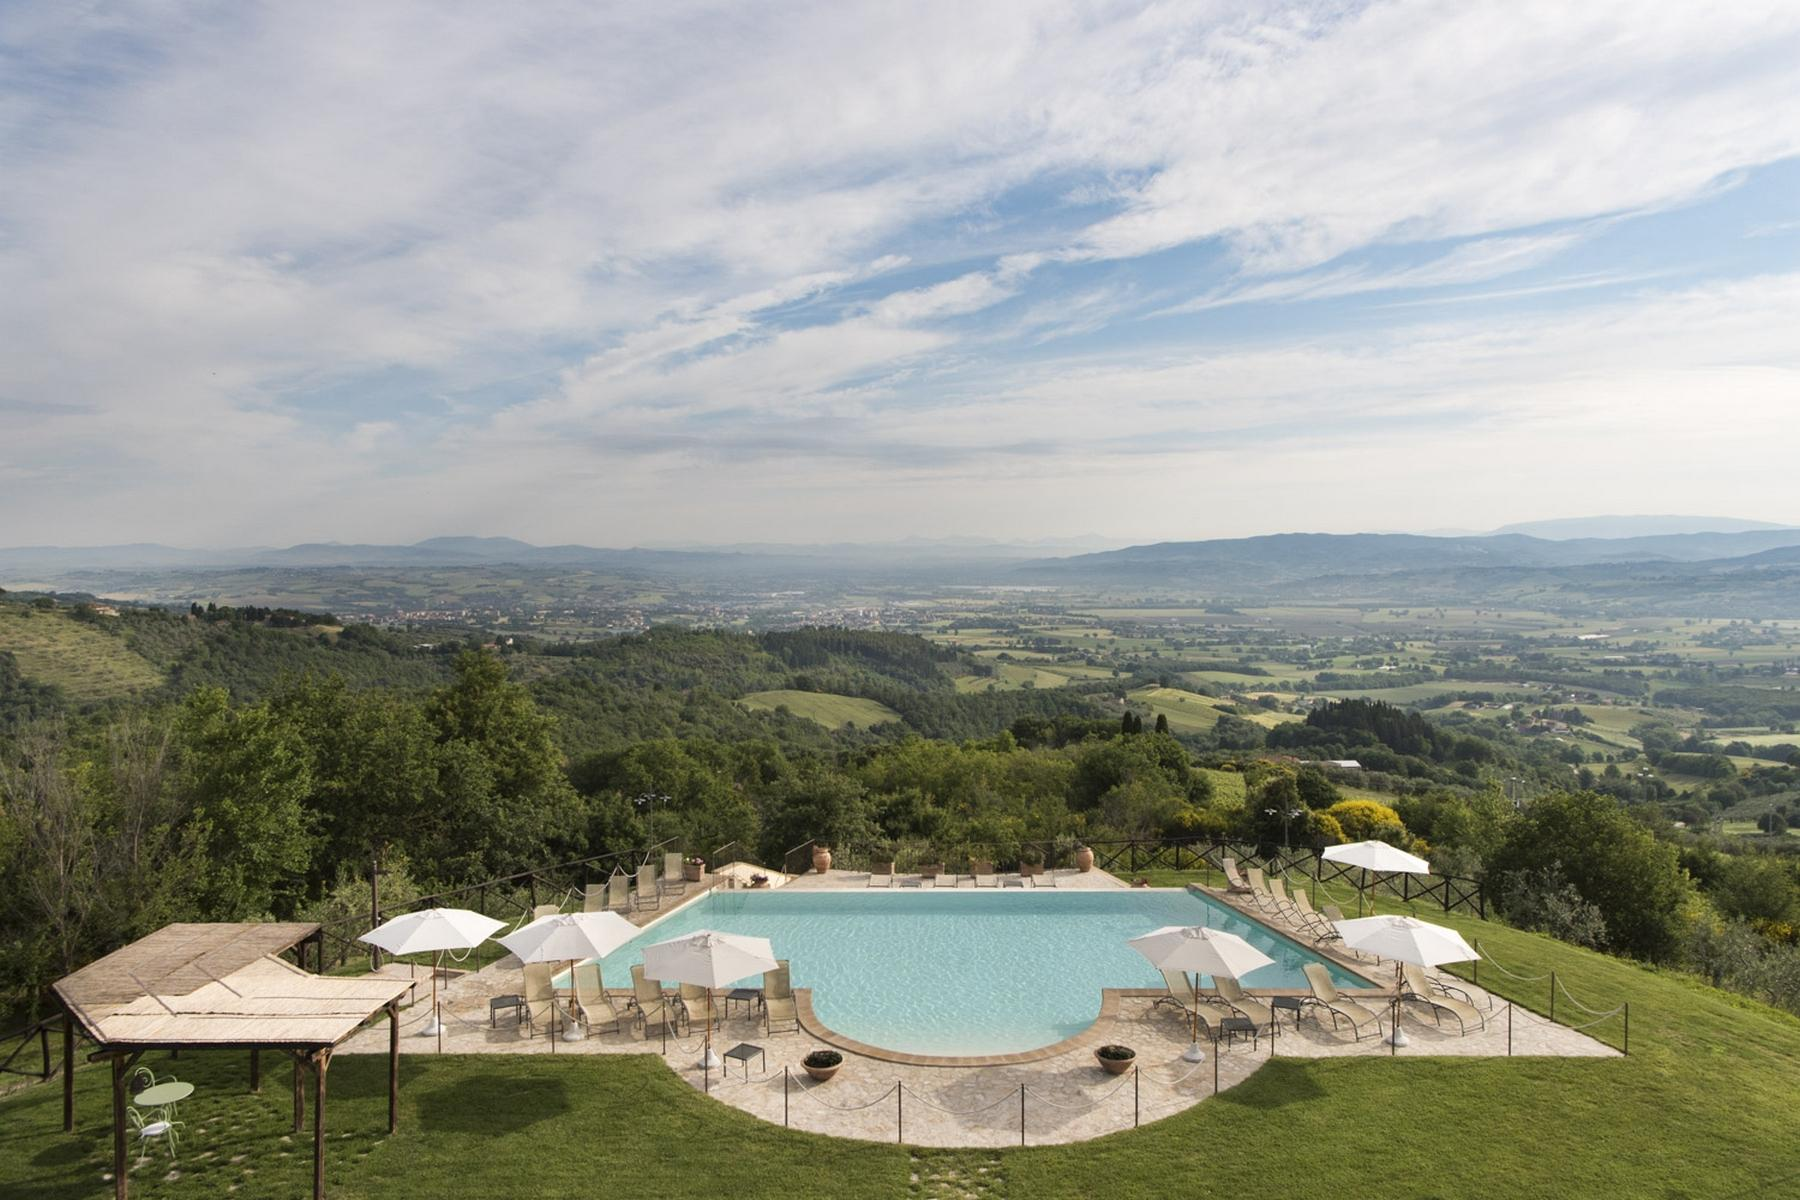 Marvellous property in the heart of Umbria Region - 18